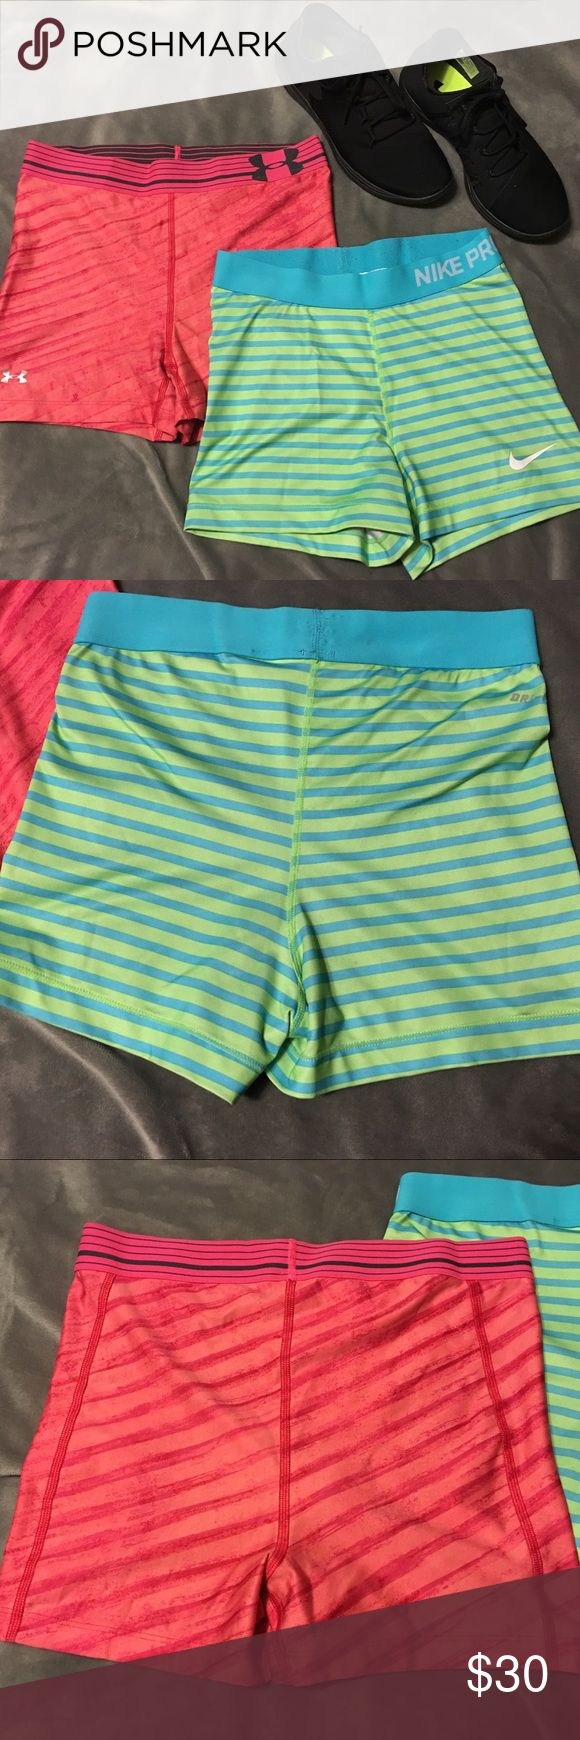 2 dri fit volleyball gym shorts 1 Nike dri fit and 1 Under Armour...gently used. Great condition!!! Comes from smoke free, pet free home. Shipping dates are Tuesday through Friday Nike Shorts